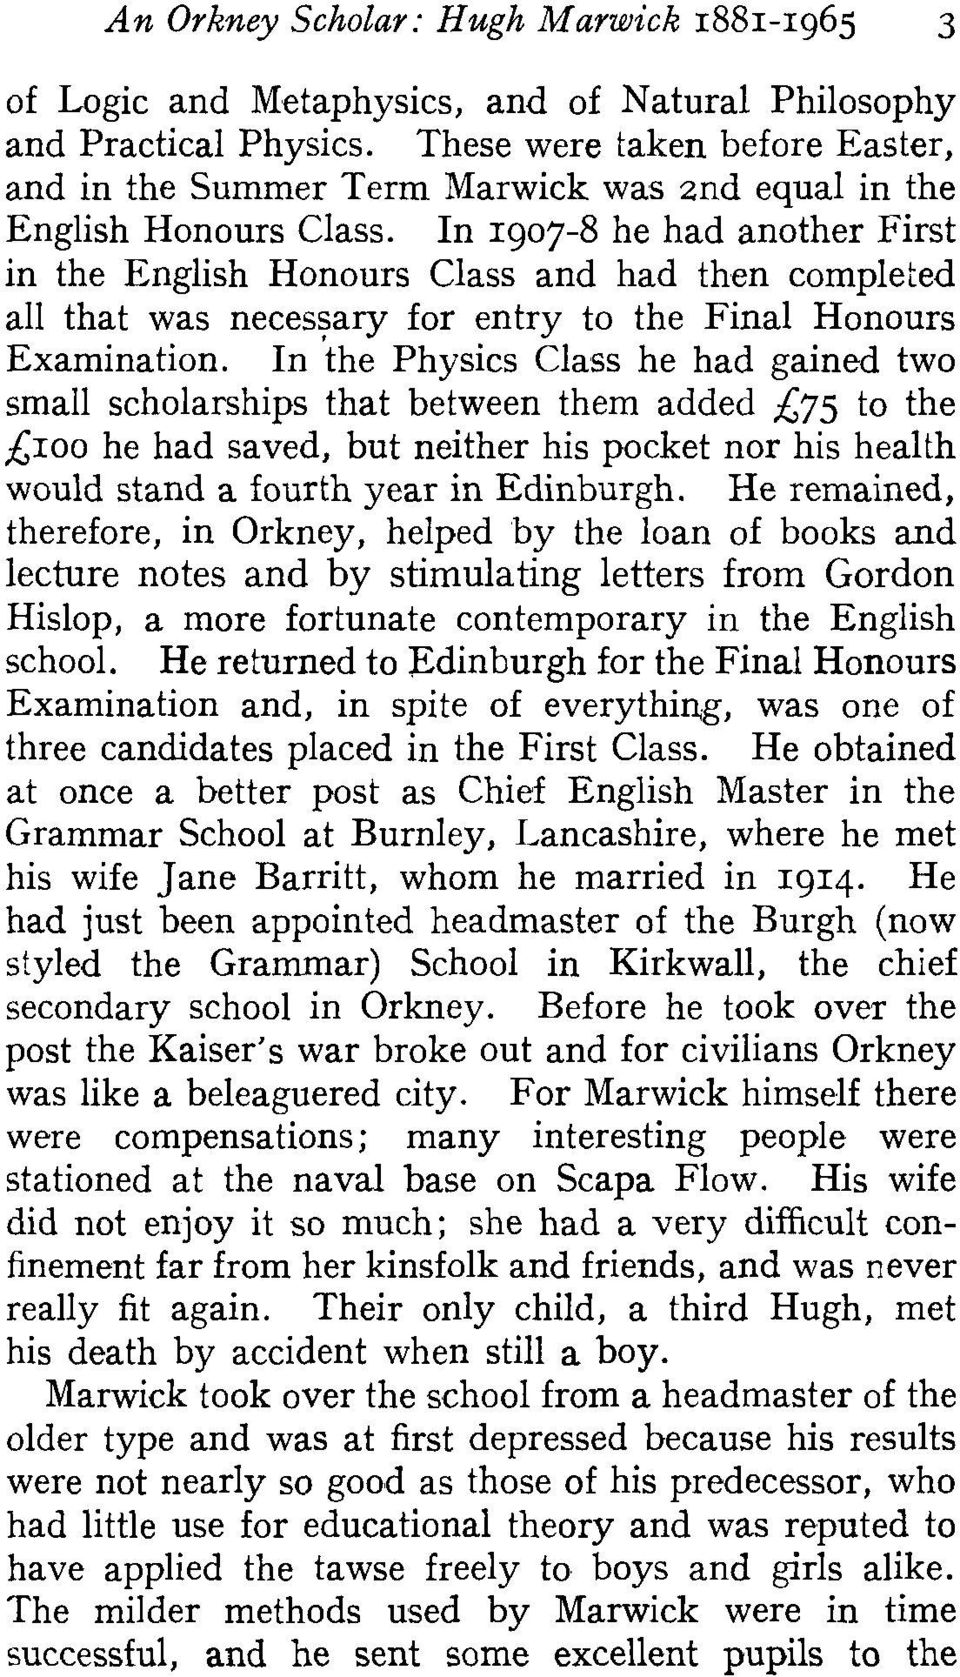 In 1907-8 he had another First in the English Honours Class and had then completed all that was necessary for entry to the Final Honours Examination.